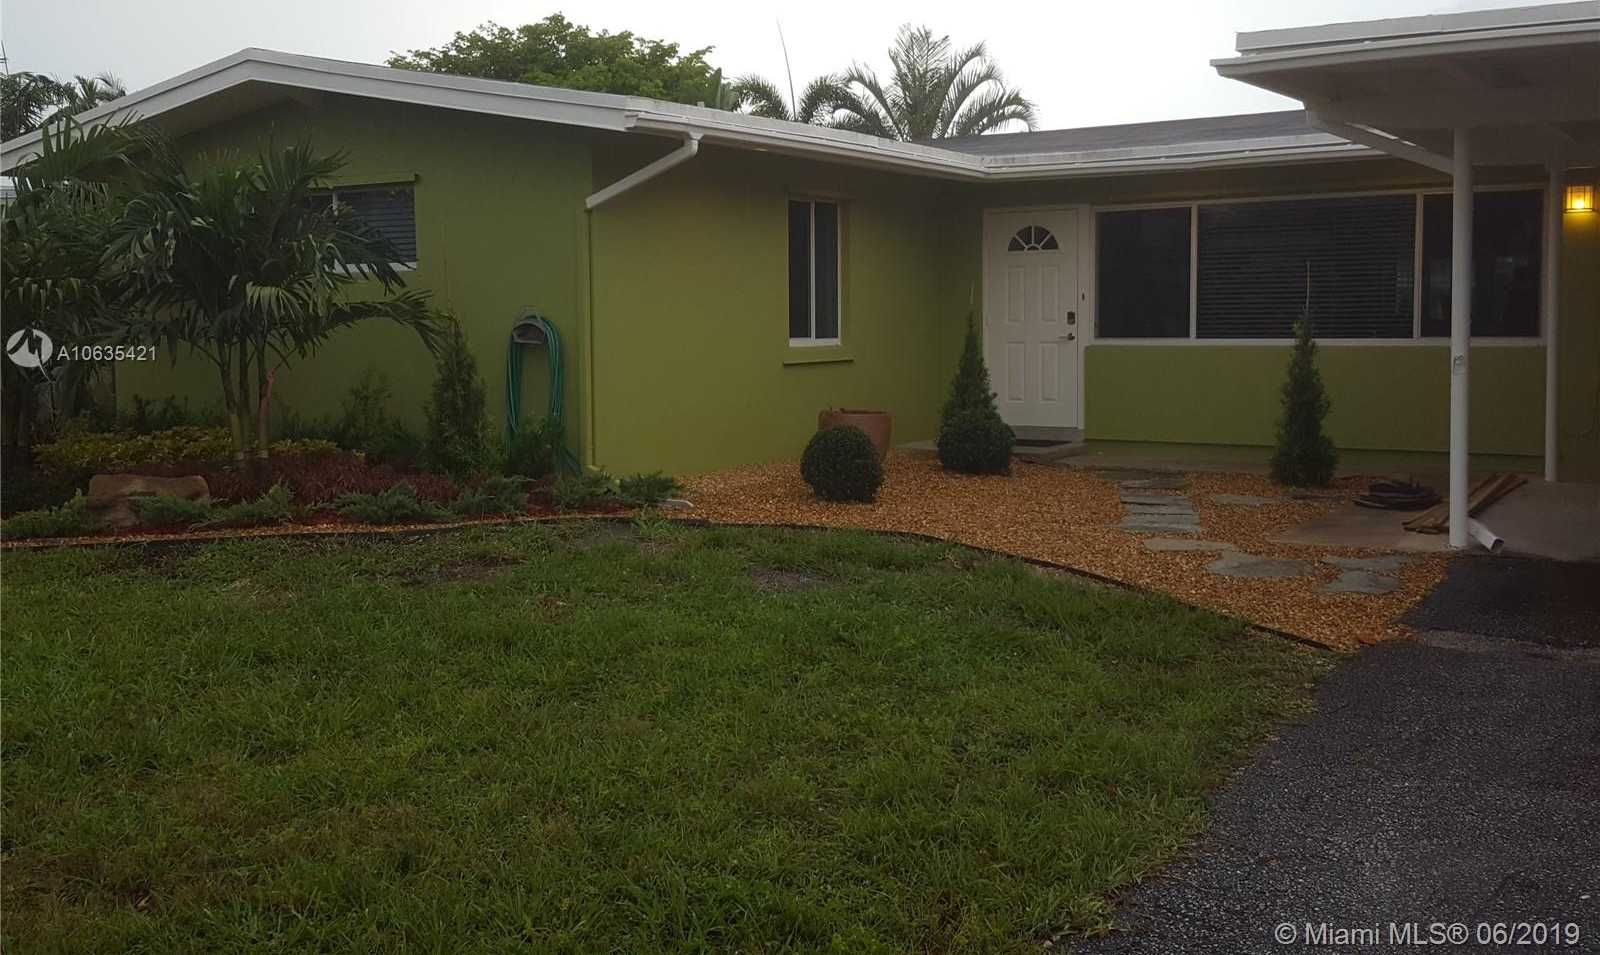 $434,900 - 4Br/2Ba -  for Sale in Lauderdale Isles No 2-blk, Fort Lauderdale